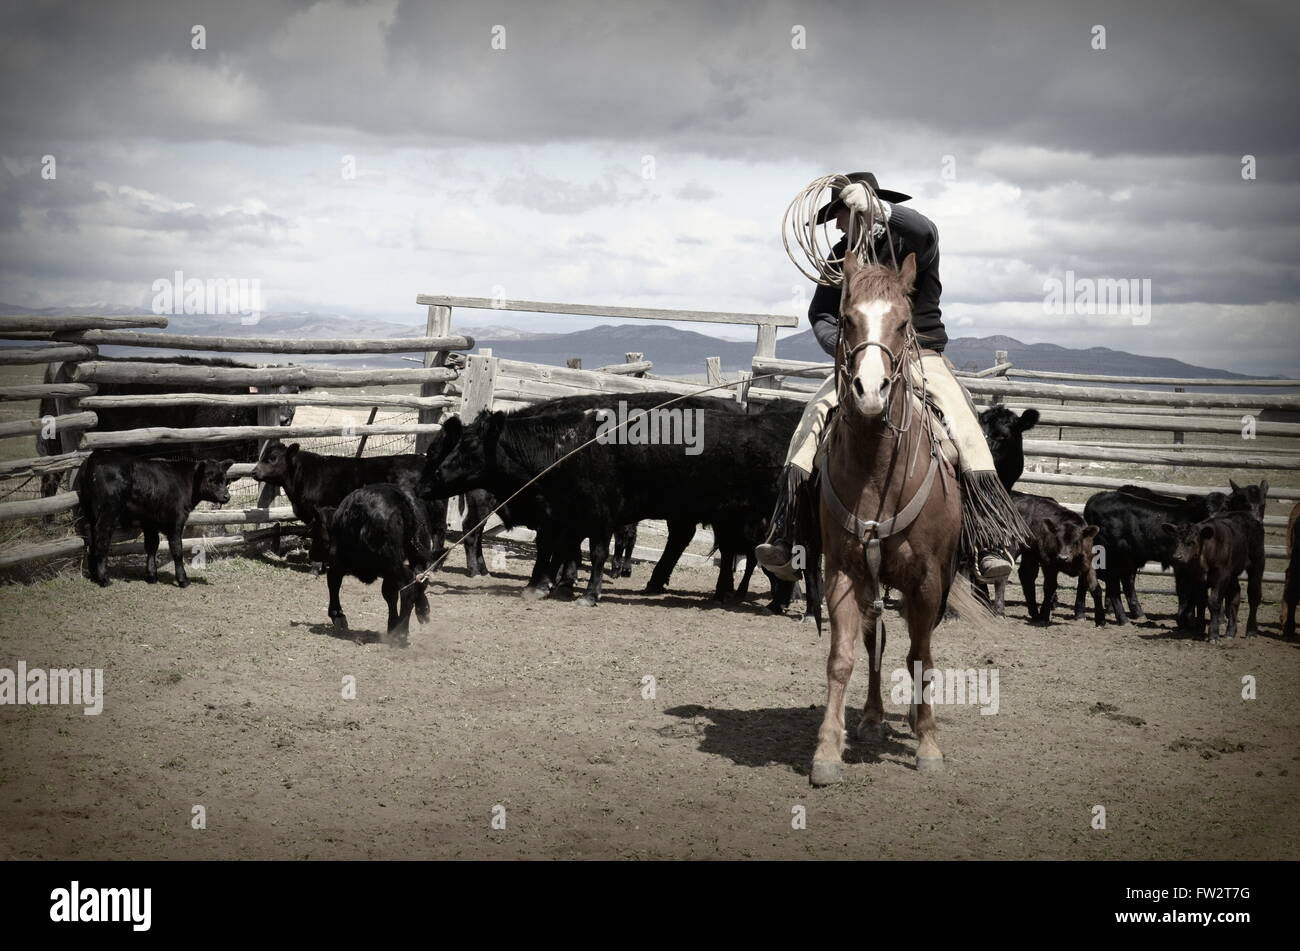 Branding cattle stock photos branding cattle stock images alamy american cowboy on horse dragging calf to branding fire black cattle behind him and his buycottarizona